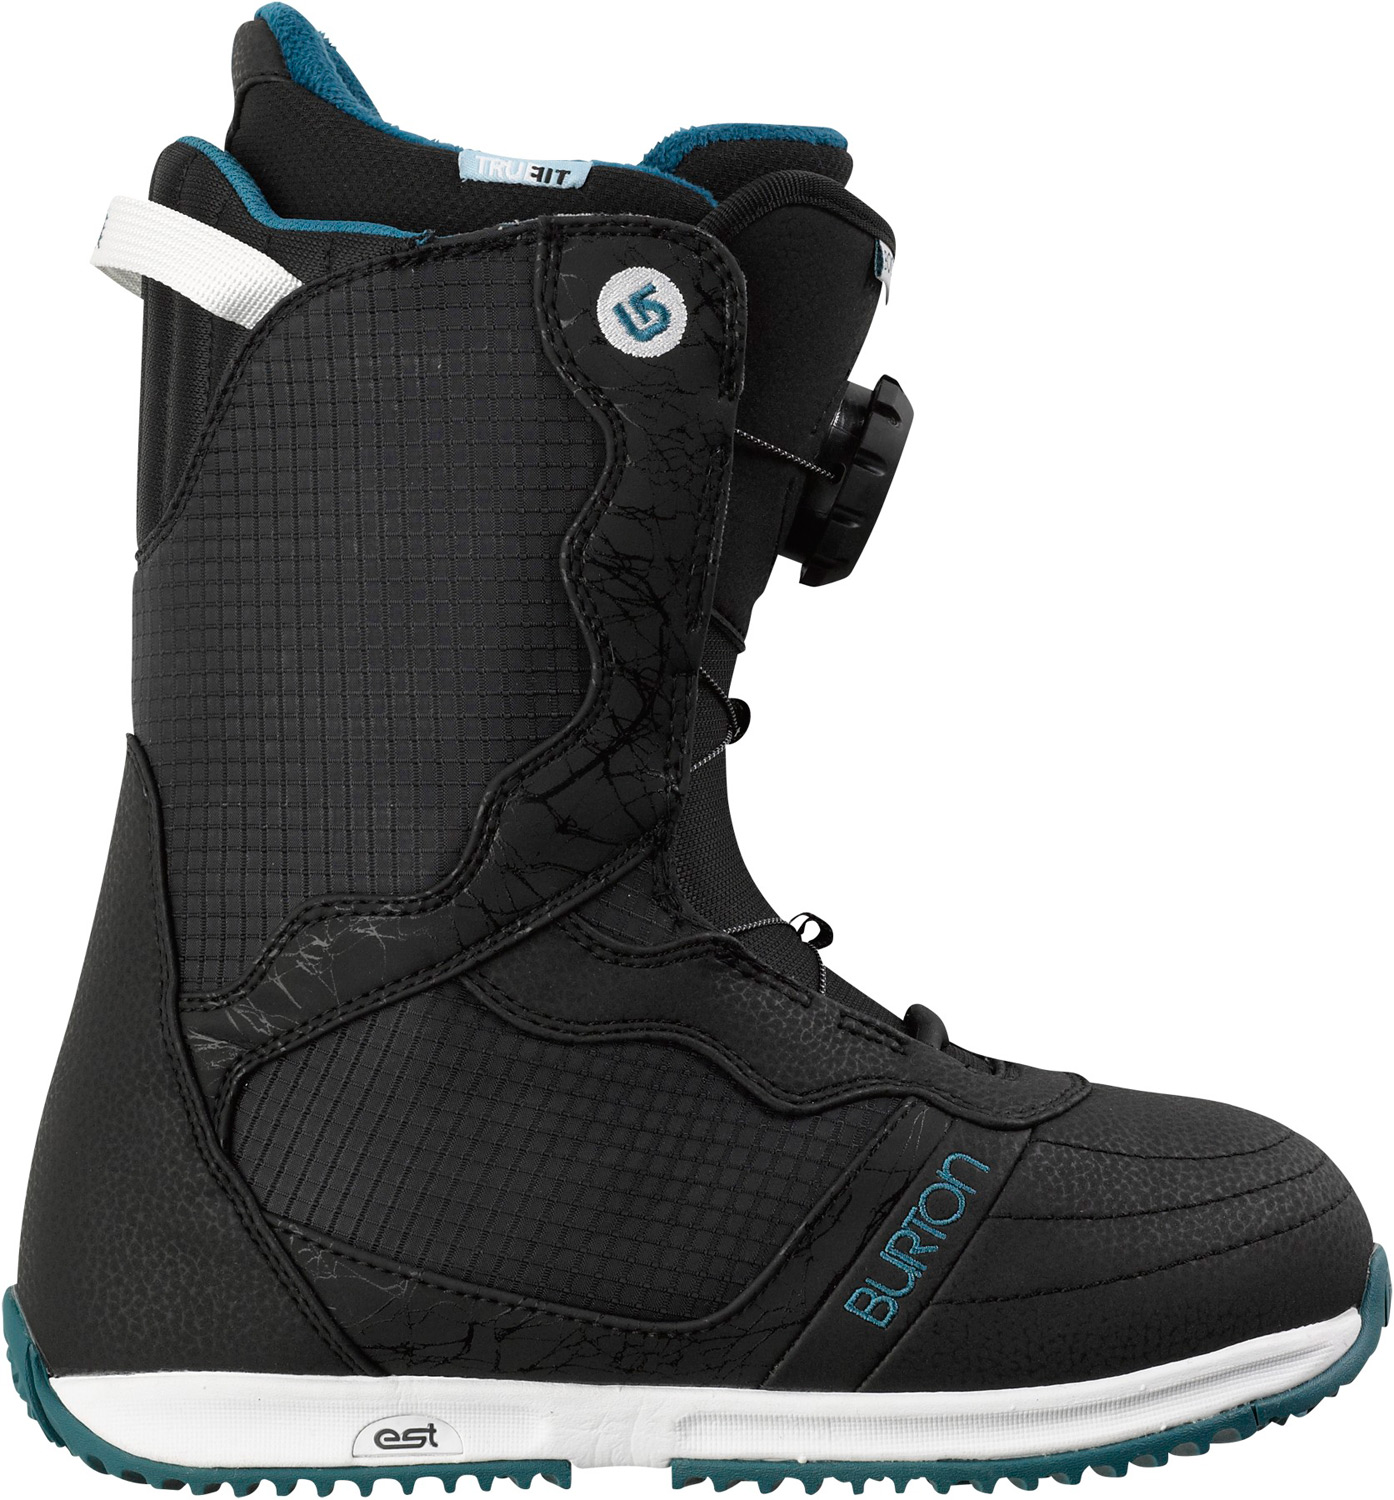 Snowboard Like puppies and candy for your feet.Key Features of the Burton Bootique Snowboard Boots: Support: 3 Women's-Specific True Fit™ Design Lacing: NEW Speed Dial Lacing System Liner: Imprint™ 1 Liner with Integrated Lacing and Hot Pockets Heated by Little Hotties® Disposable Toe Warmers [Includes One FREE Pair] Cushioning: Lightweight, Low-Profile EST™ Optimized Midsole with B3 Gel Flex and Response: Soft-Flexing Shell Materials and Soft Flex 3D® Molded Tongue Comfort: Total Comfort Construction, Snow-Proof Internal Gusset, and Level 1 Molded EVA Footbed - $149.95